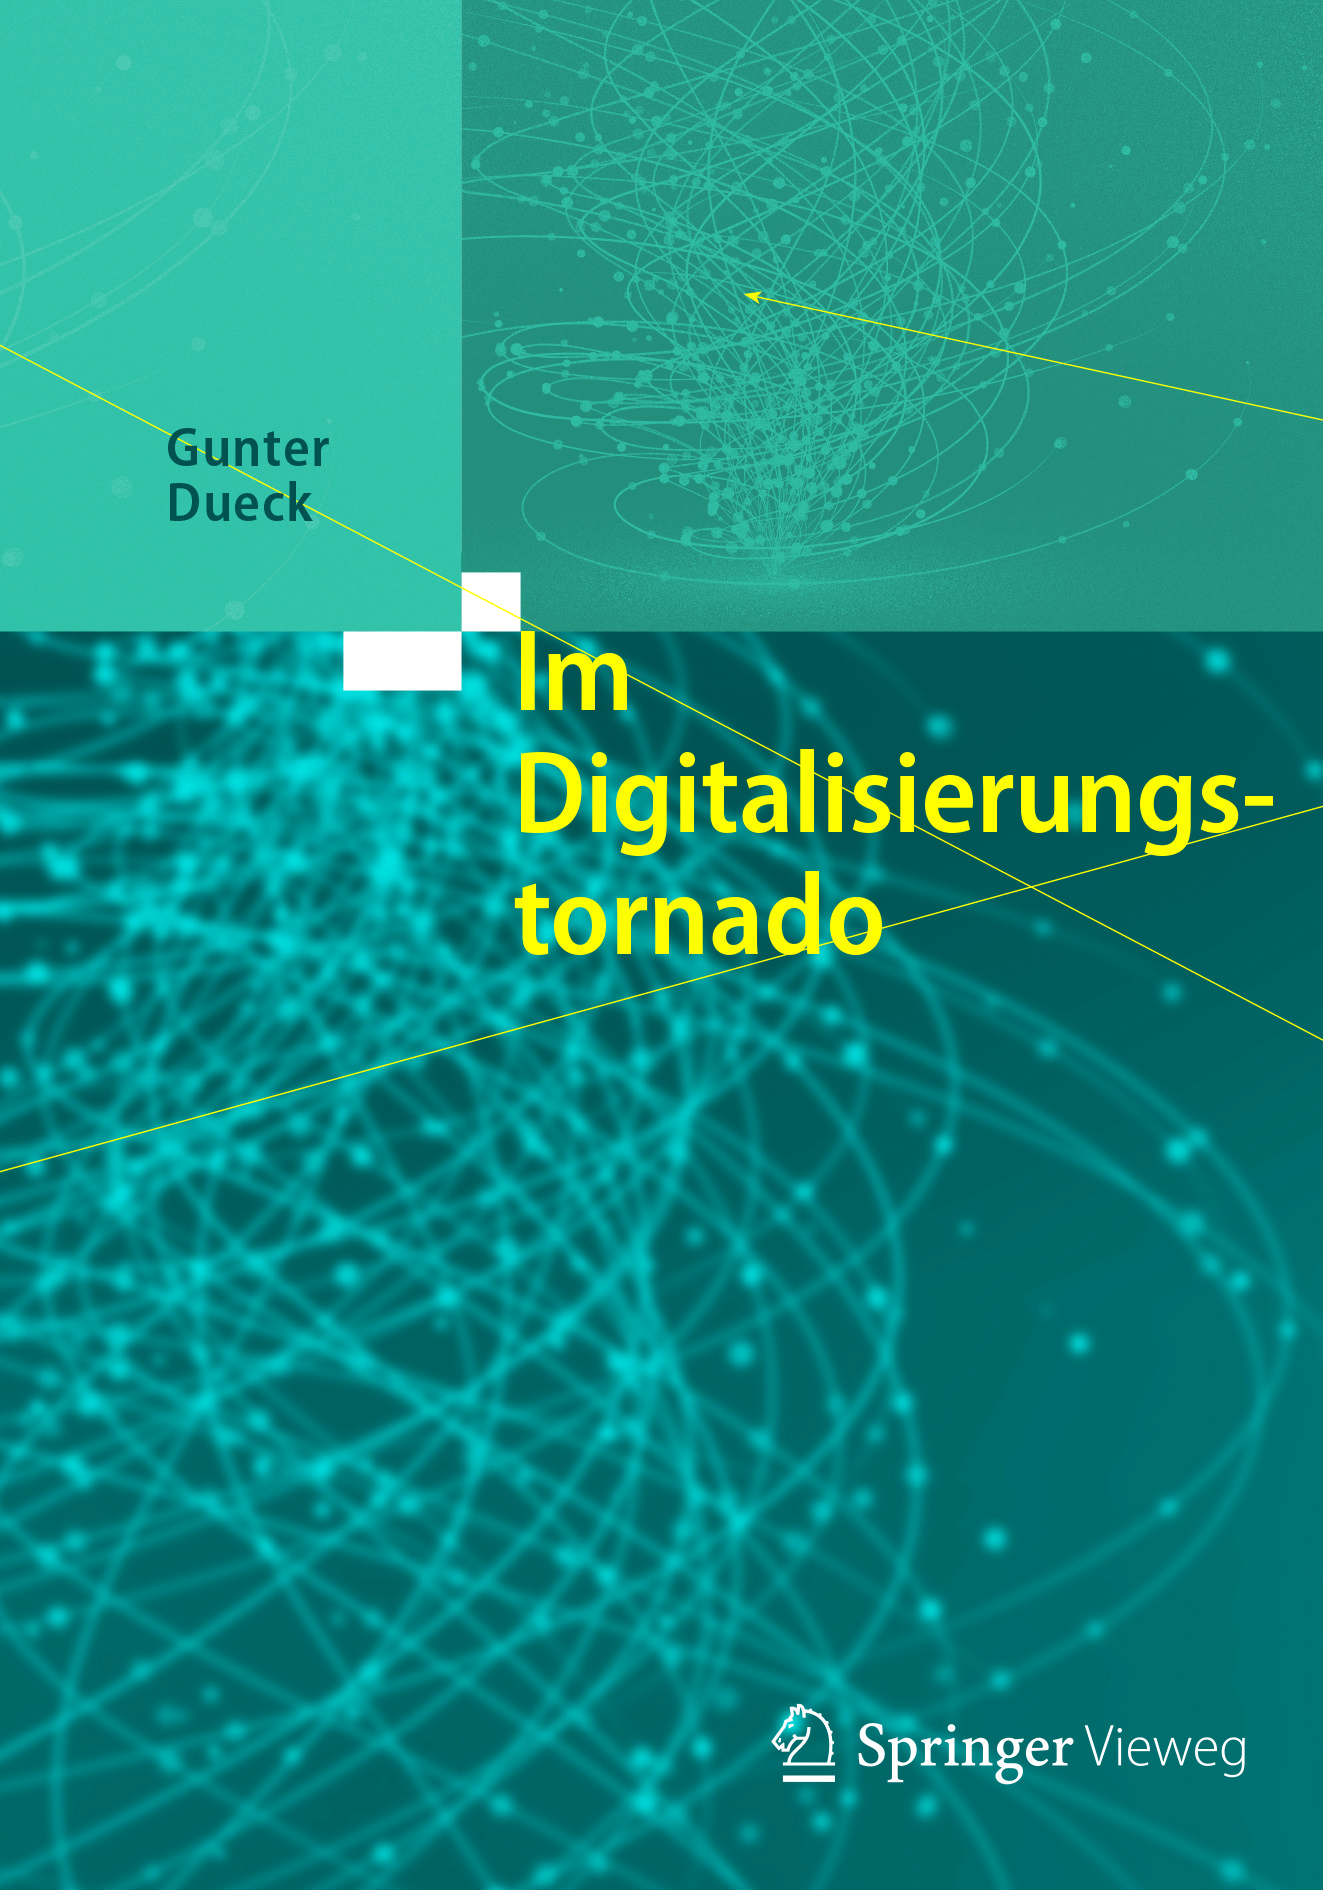 Dueck, Gunter - Im Digitalisierungstornado, ebook